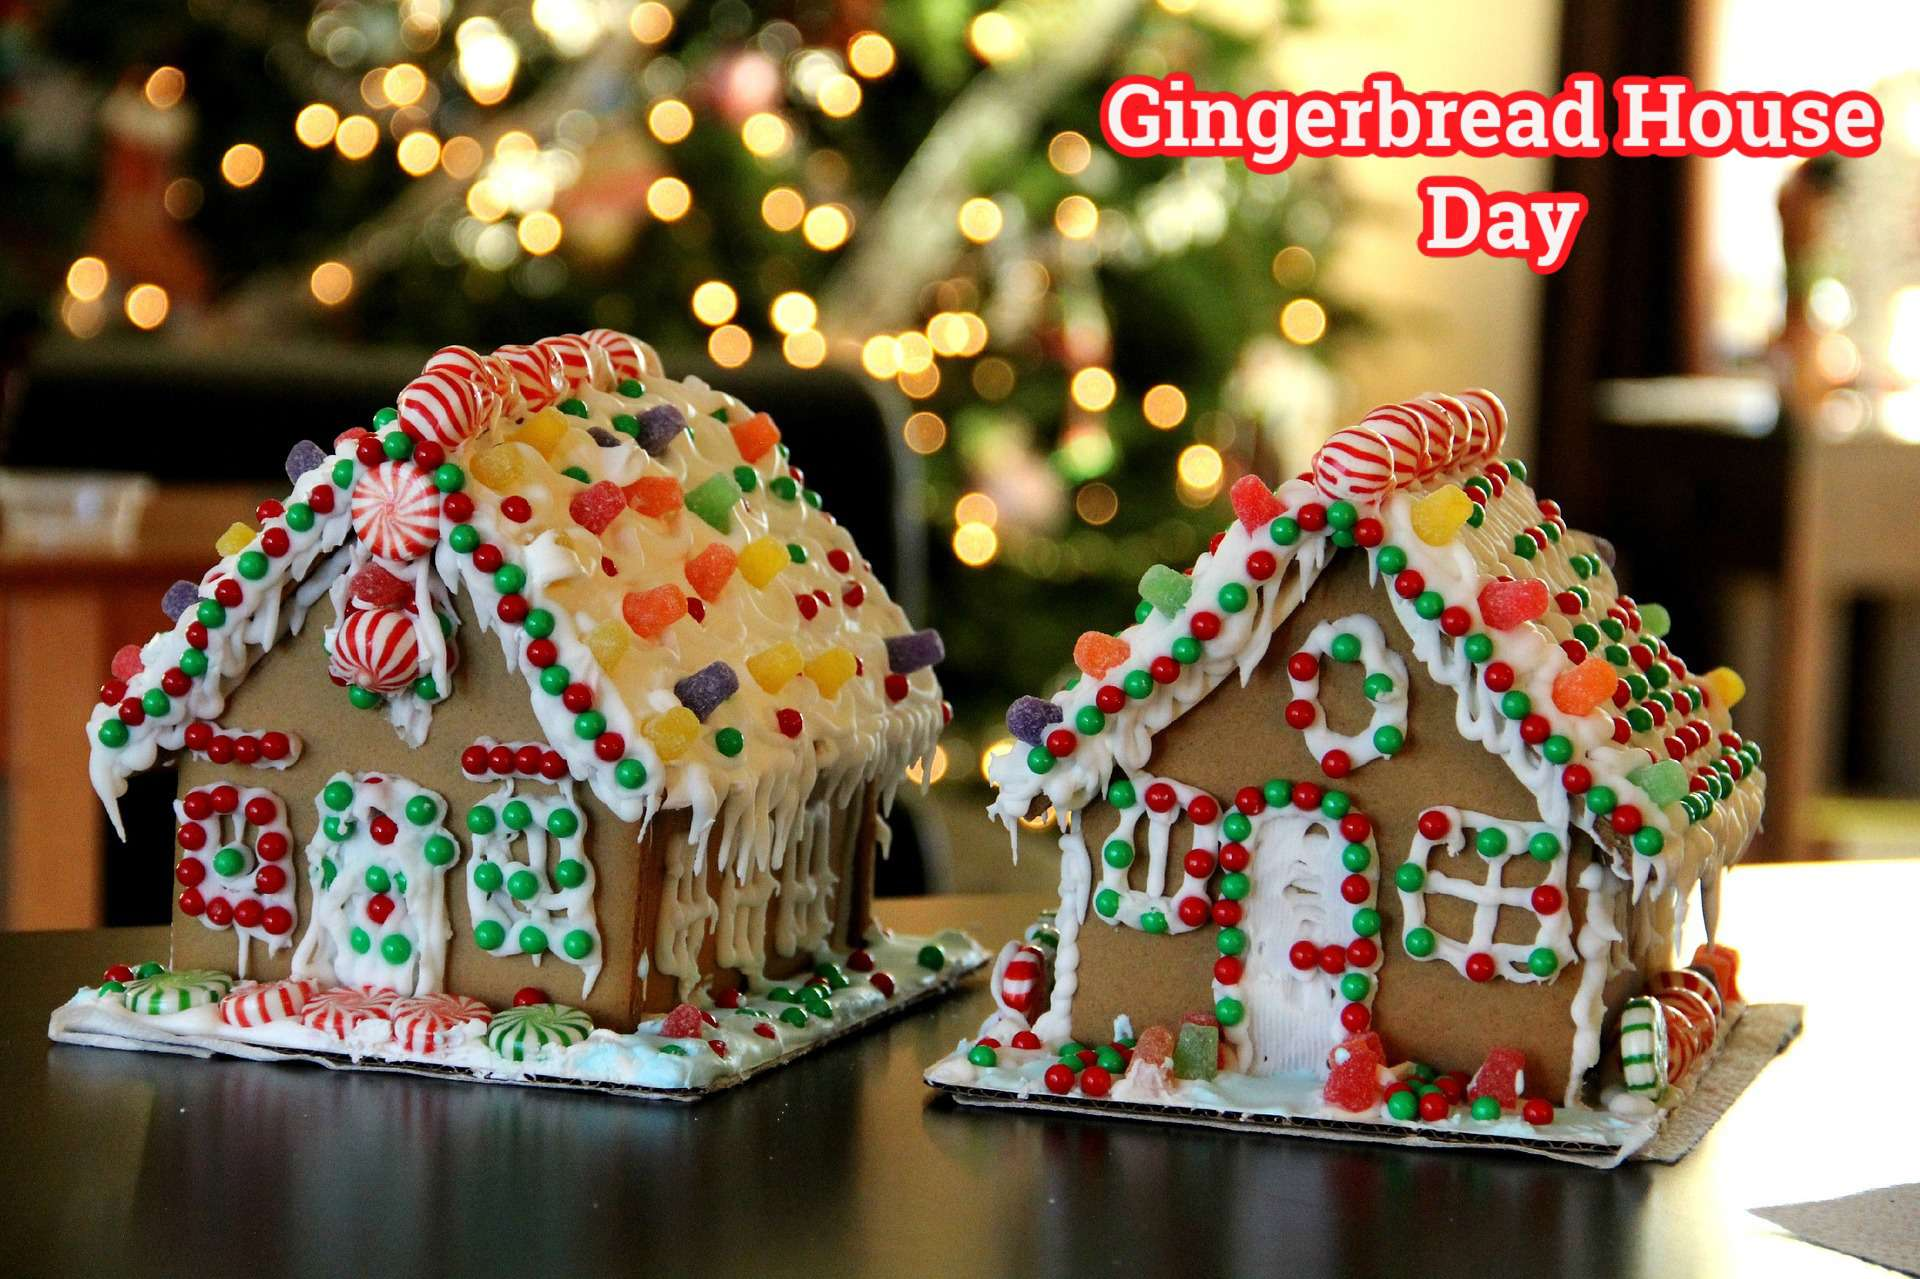 Gingerbread House Day Wishes Unique Image